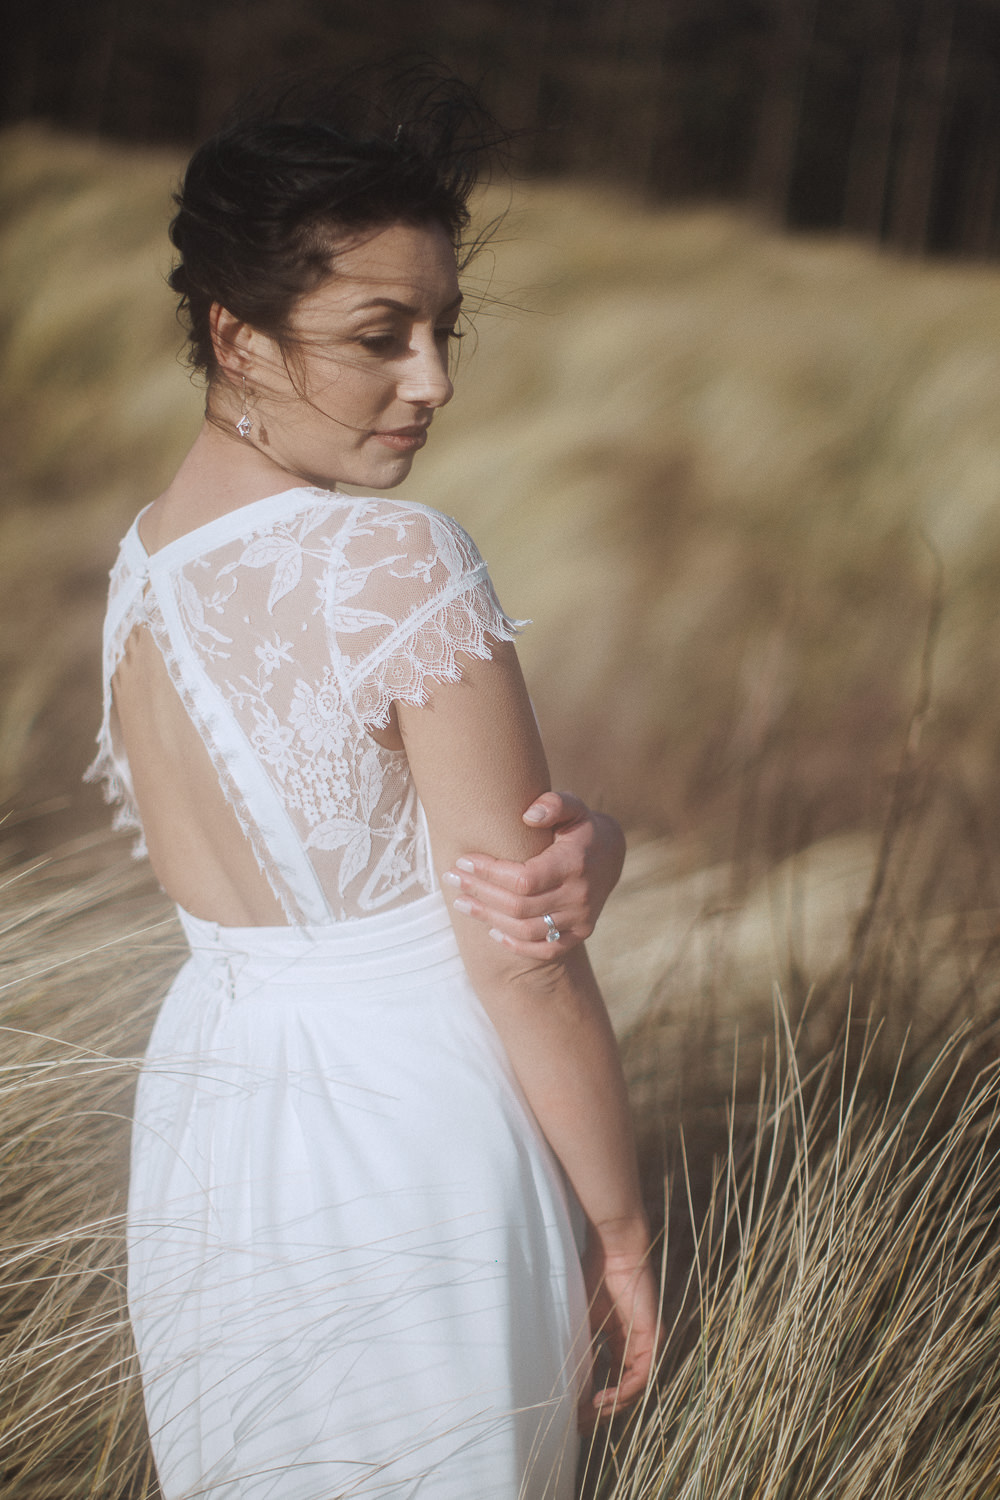 Bride in a rembo gown during an elopement at Newborough Beach, Anglesey, Wales